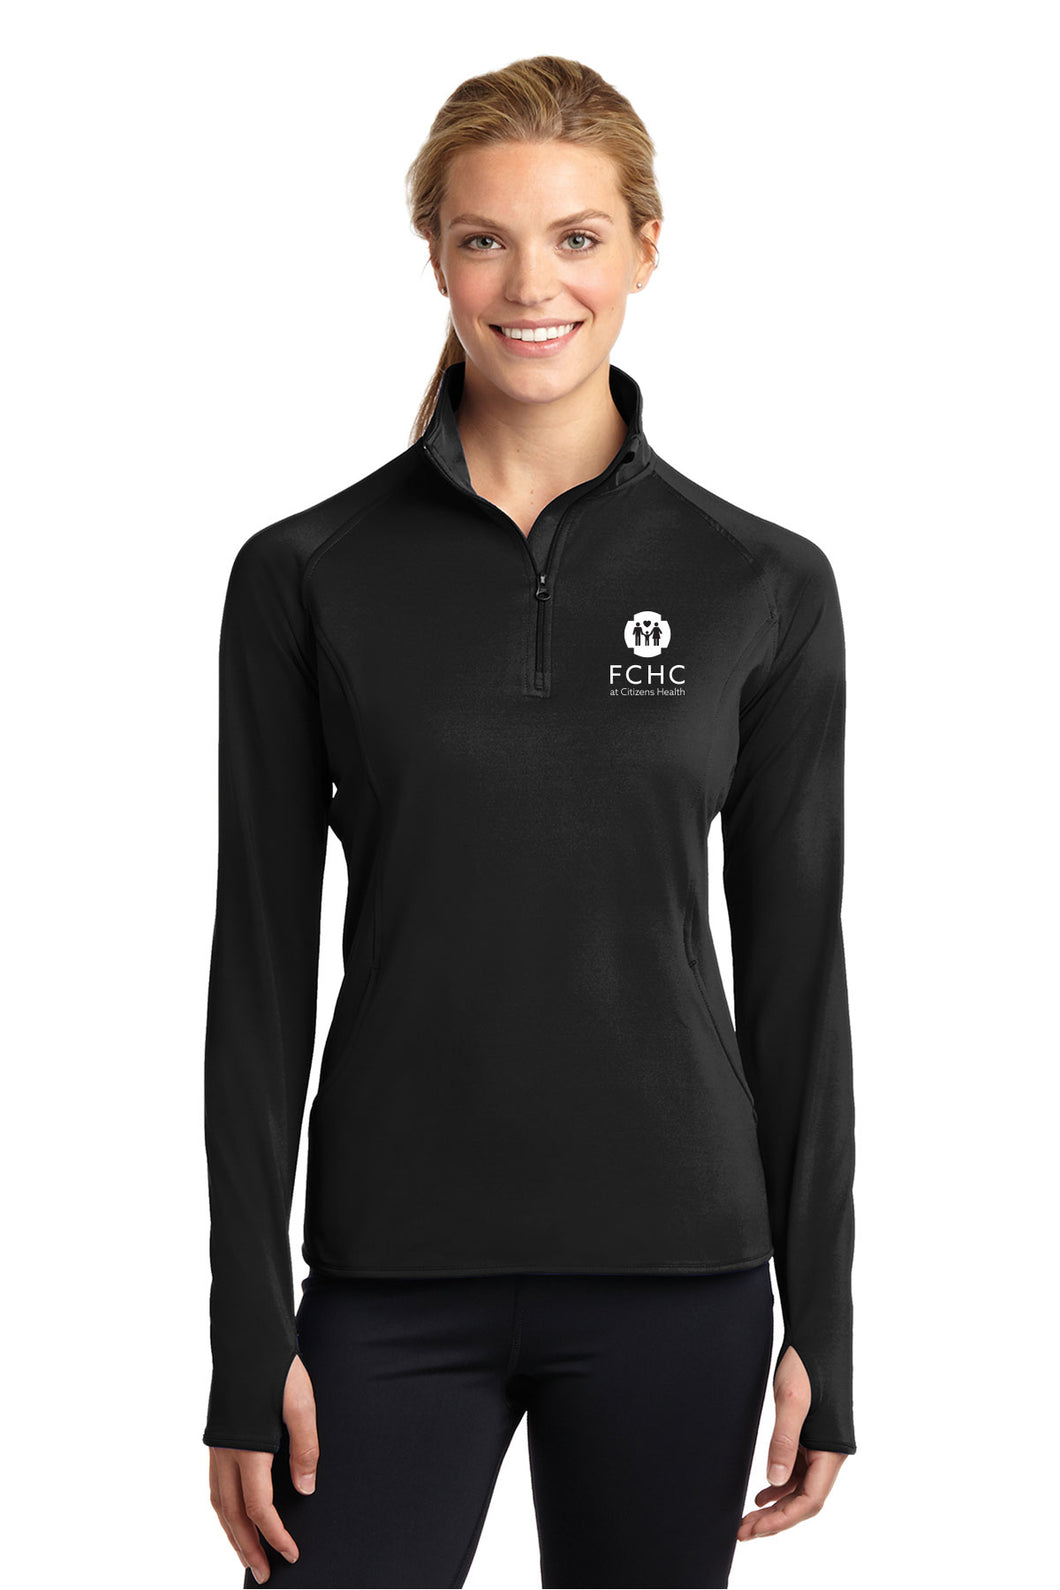 Sport-Tek® Ladies Sport-Wick® Stretch 1/2-Zip Pullover - FCHC